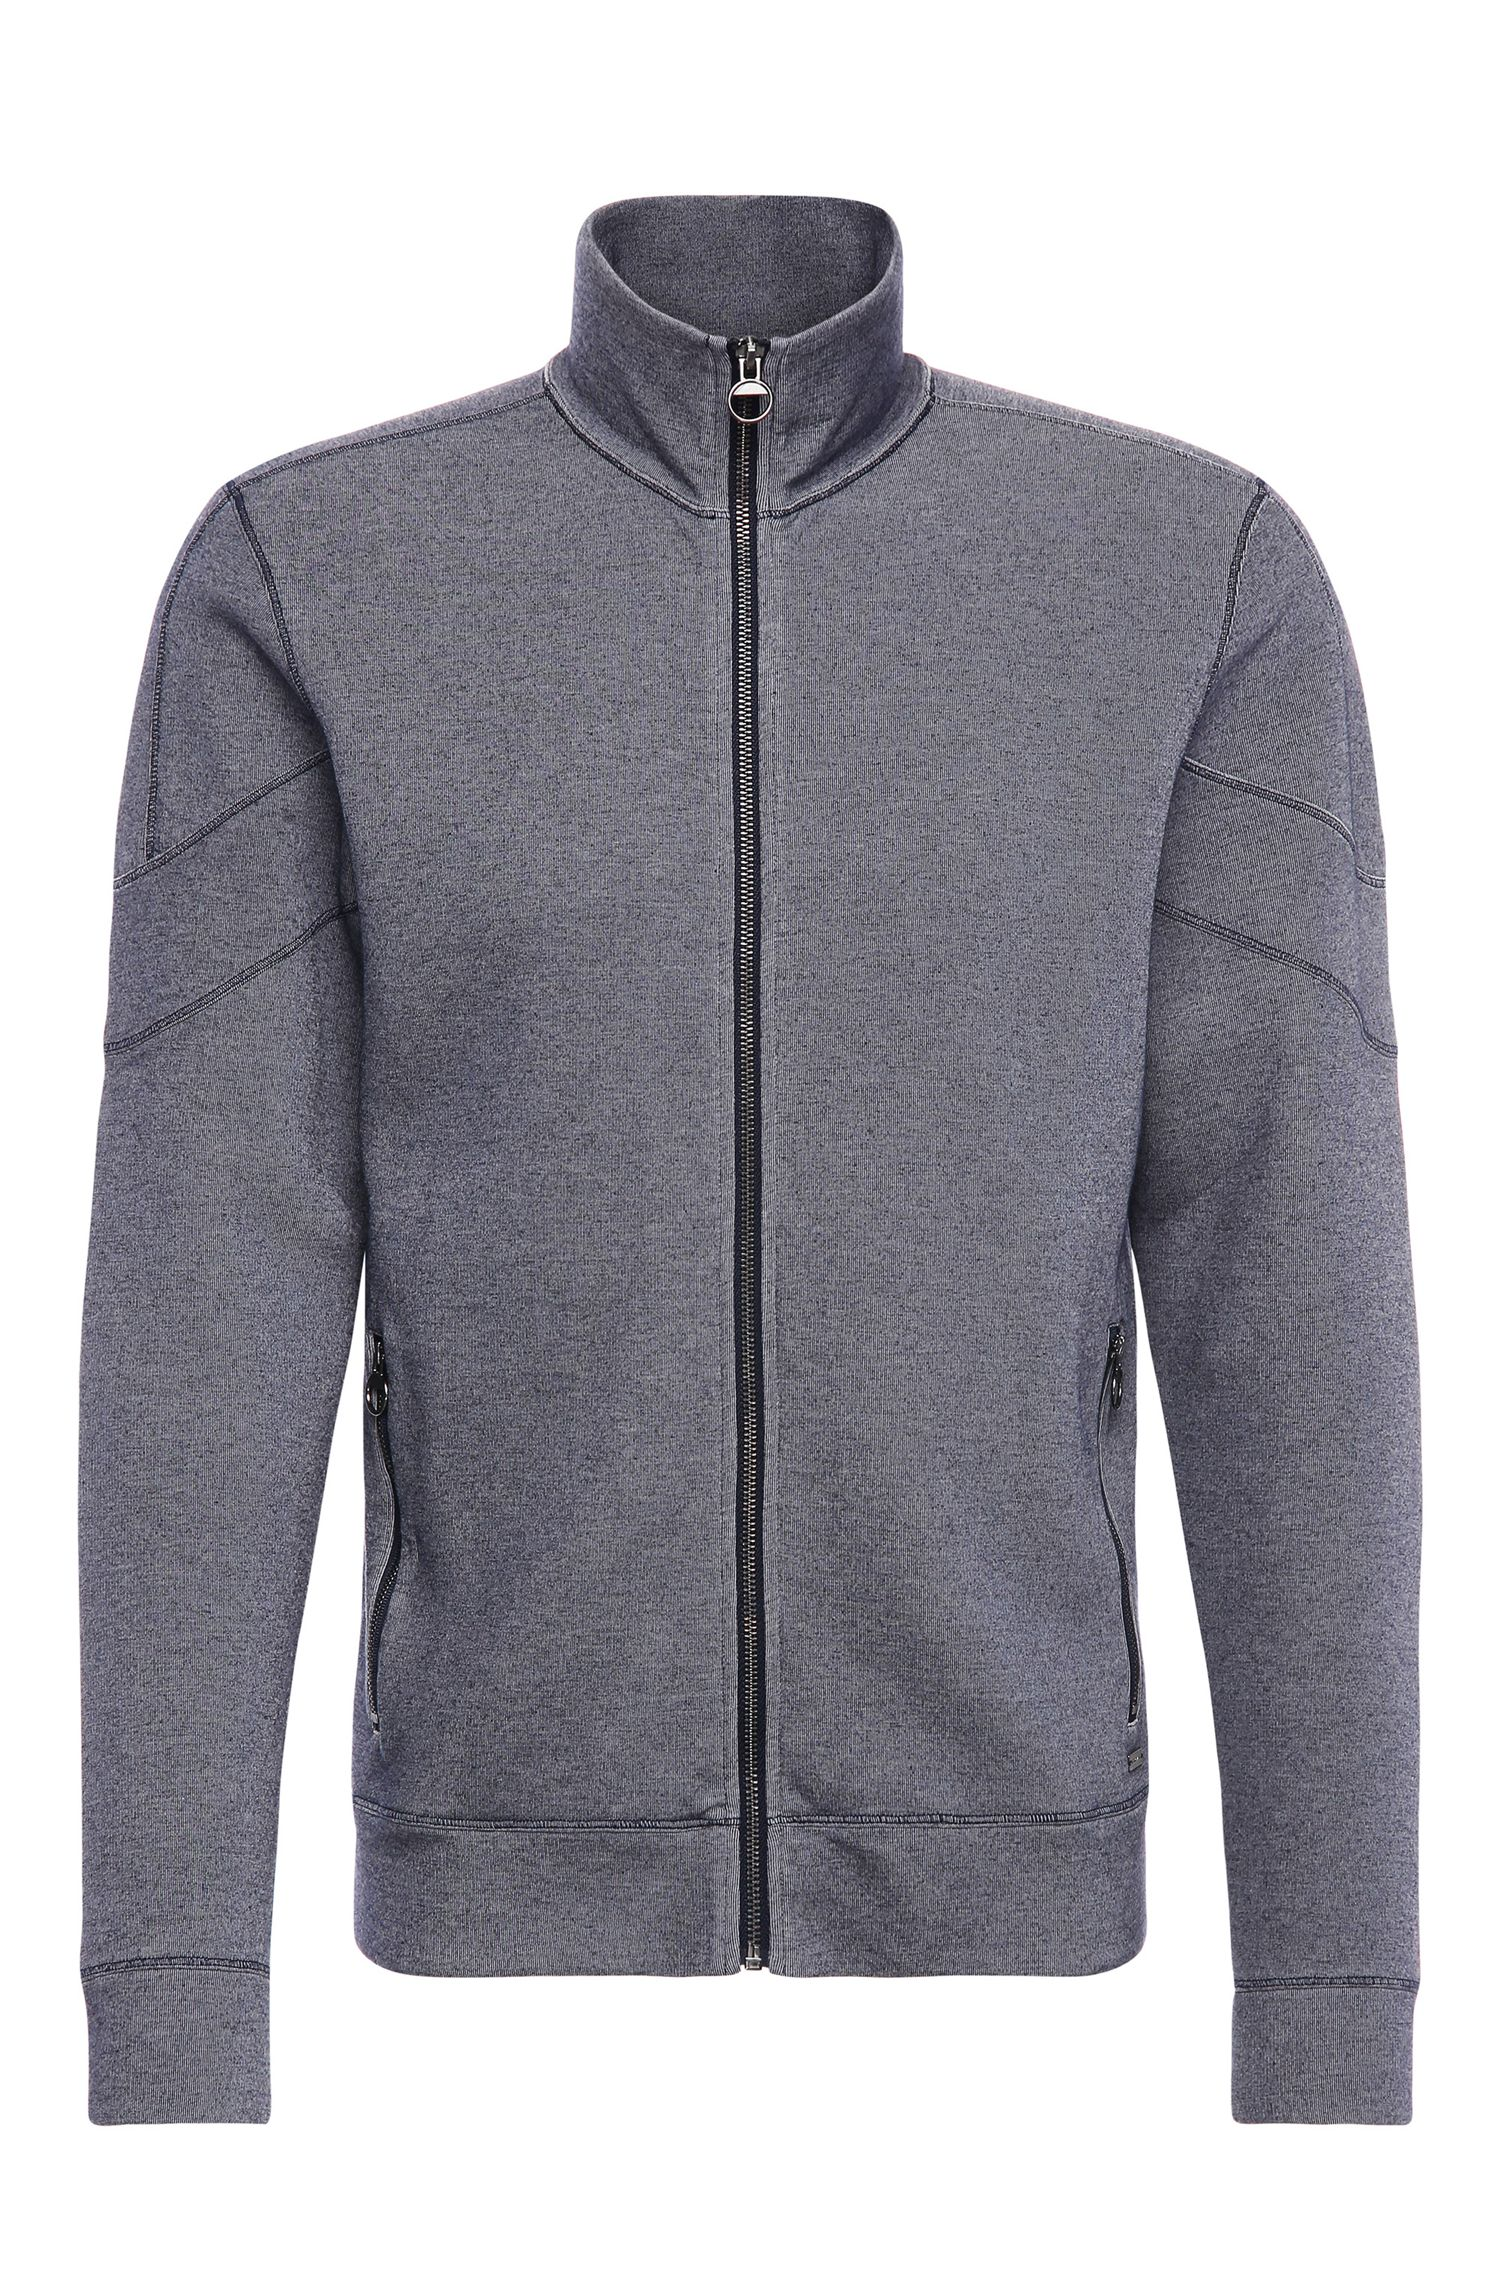 Cotton Blend Indigo Zip Jacket | Zycle